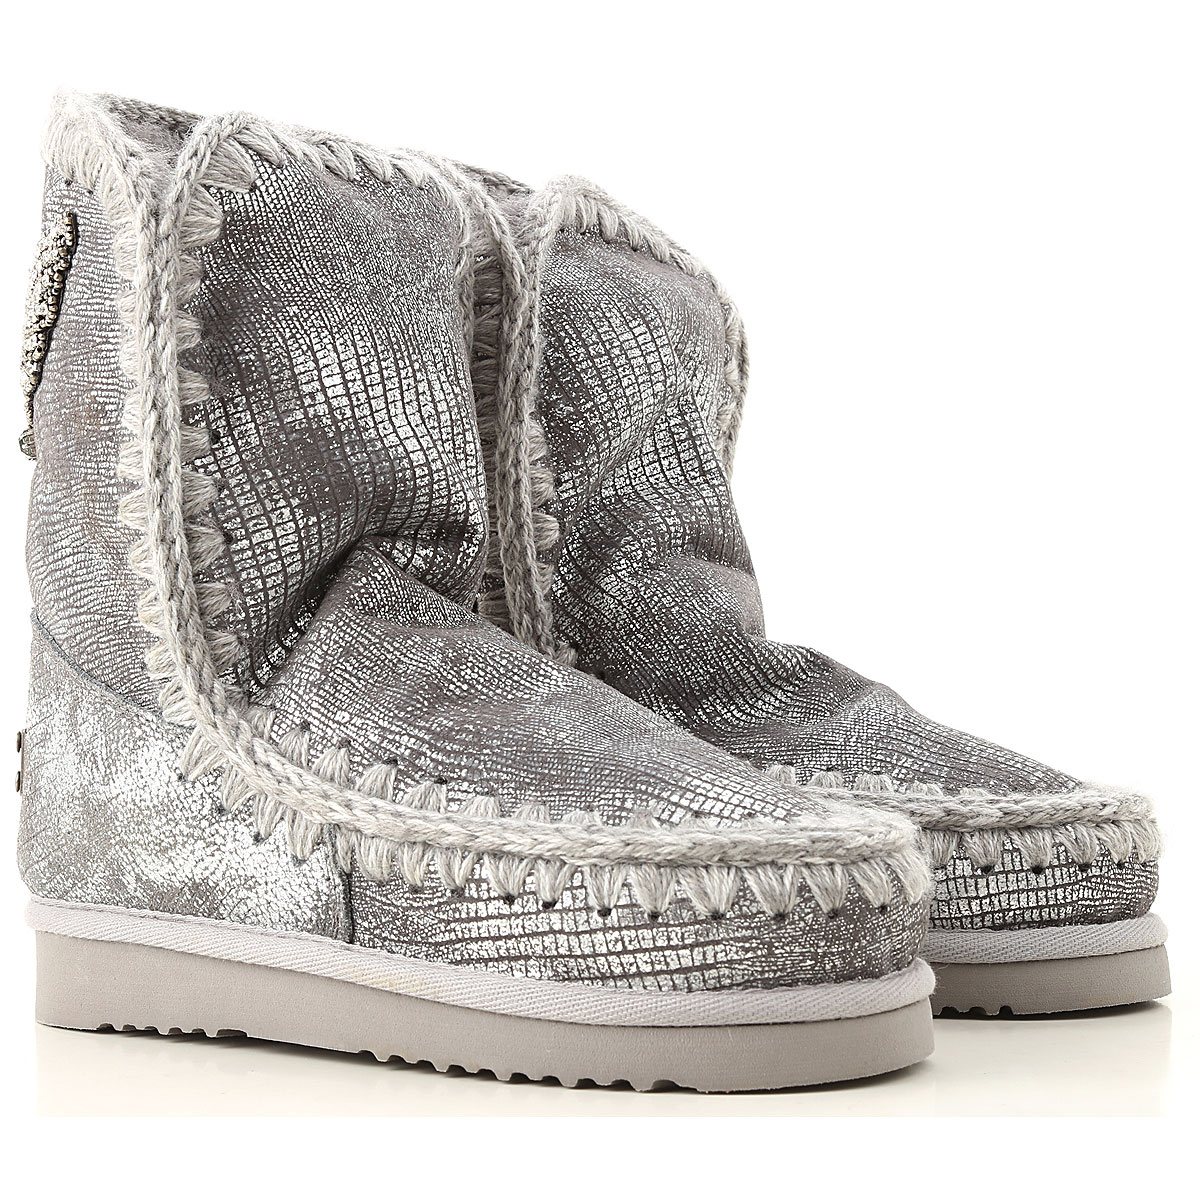 Image of Mou Boots for Women, Booties, Silver, Leather, 2017, EUR 36 - UK 3 - USA 5.5 EUR 37 - UK 4 - USA 6.5 EUR 40 - UK 7 - USA 9.5